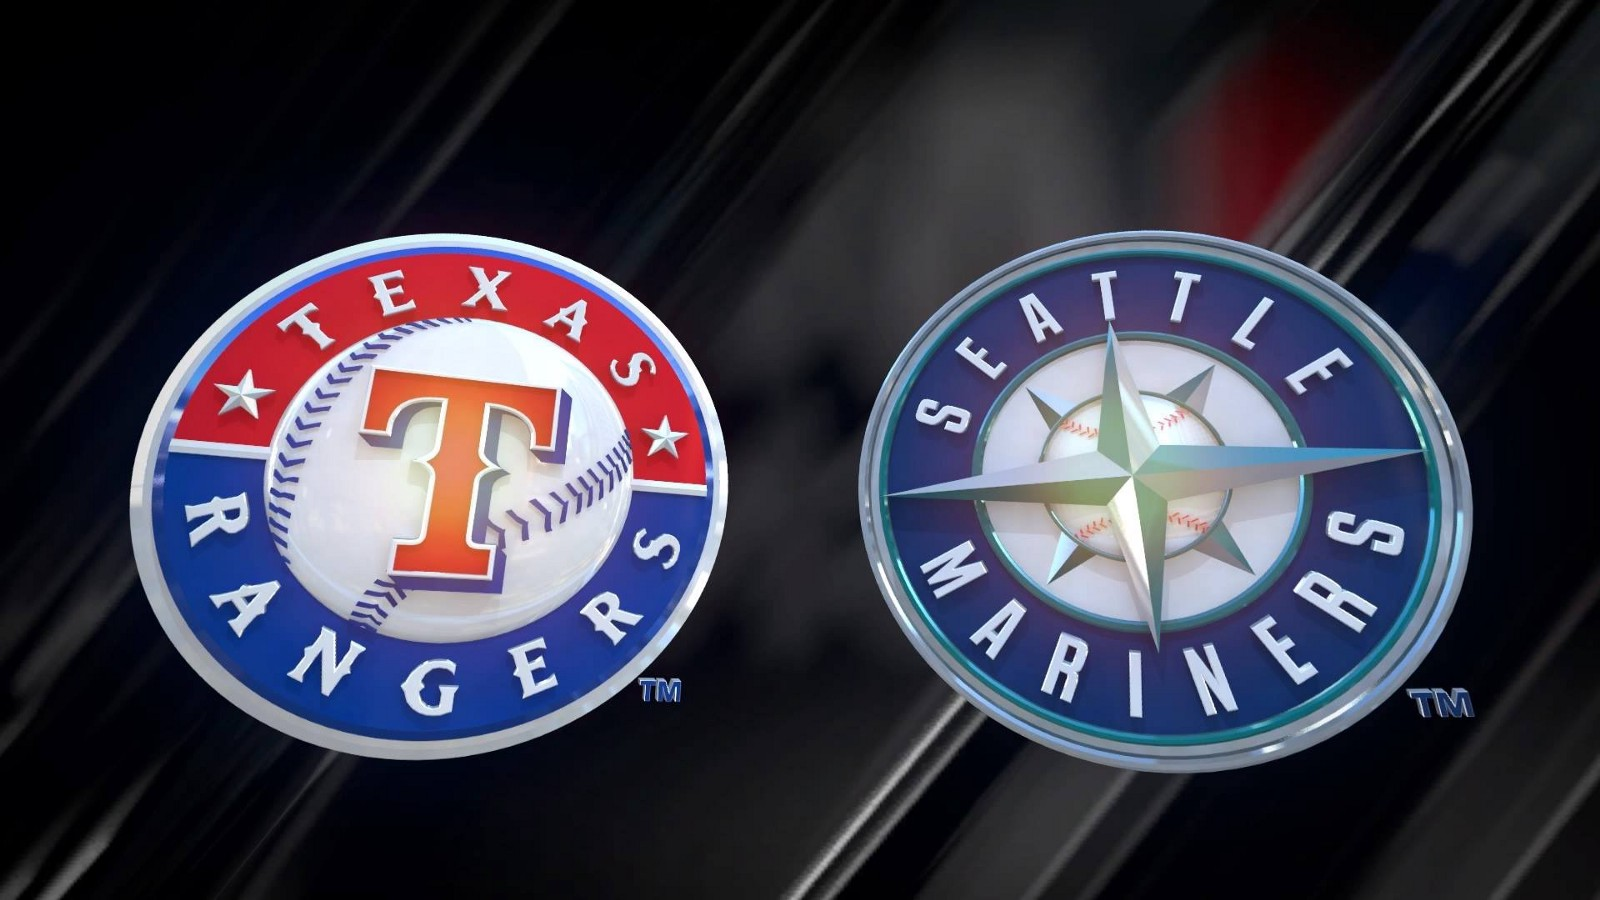 Texas Rangers Vs Seattle Mariners Tickets Globe Life Park